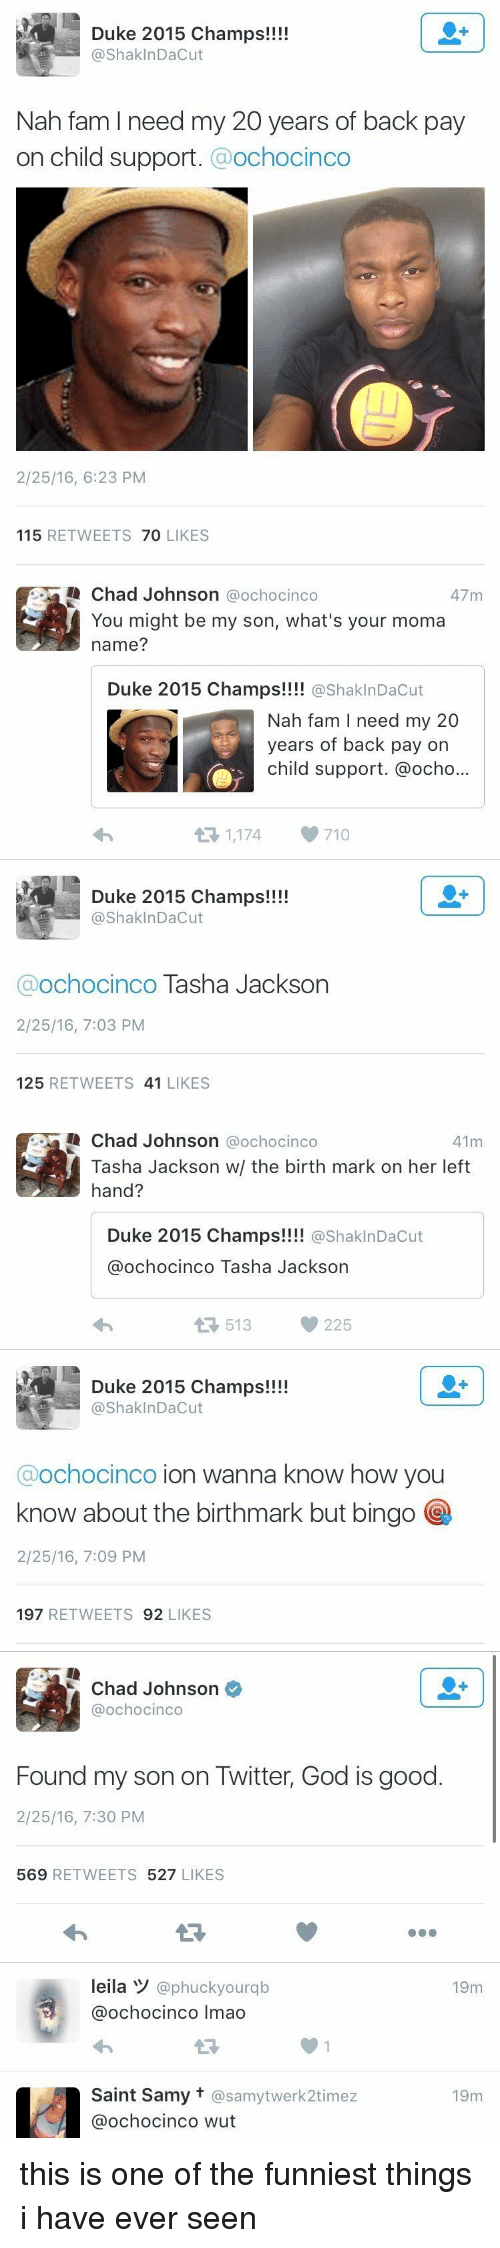 Child Support, Fam, and God: Duke 2015 champs!!!!  ShaklnDacut  Nah fam l need my 20 years of back pay  on child support  Ochocinco  2/25/16, 6:23 PM  115  RETWEETS  70  LIKES   Chad Johnson  a ochocinco  47 m  You might be my son, what's your moma  name?  Duke 2015 Champs!!!!  @Shakl nDacut  Nah fam I need my 20  years of back pay on  child support. @ocho...  1,174, 710  t Duke 2015 Champs!!!!  Shak InDacut  Ochocinco  Tasha Jackson  2/25/16, 7:03 PM  125  RETWEETS 41  LIKES   Chad Johnson  ochocinco  41m  Tasha Jackson w/ the birth mark on her left  hand?  Duke 2015 Champs!!!!  ashakInDacut  ochocinco Tasha Jackson  513  225  Duke 2015 Champs!!!!  Shak InDacut  Ochocinco  ion wanna know how you  know about the birthmark but bingo  2/25/16, 7:09 PM  197  RETWEETS  92  LIKES   Chad Johnson  @ochocinco  Found my son on Twitter, God is good  2/25/16, 7:30 PM  569  RETWEETS  527  LIKES  leila W  @phuckyourqb  19m  ochocinco lmao  Saint Samy t @samytwerk2timez  19m  Ca ochocinco wut this is one of the funniest things i have ever seen